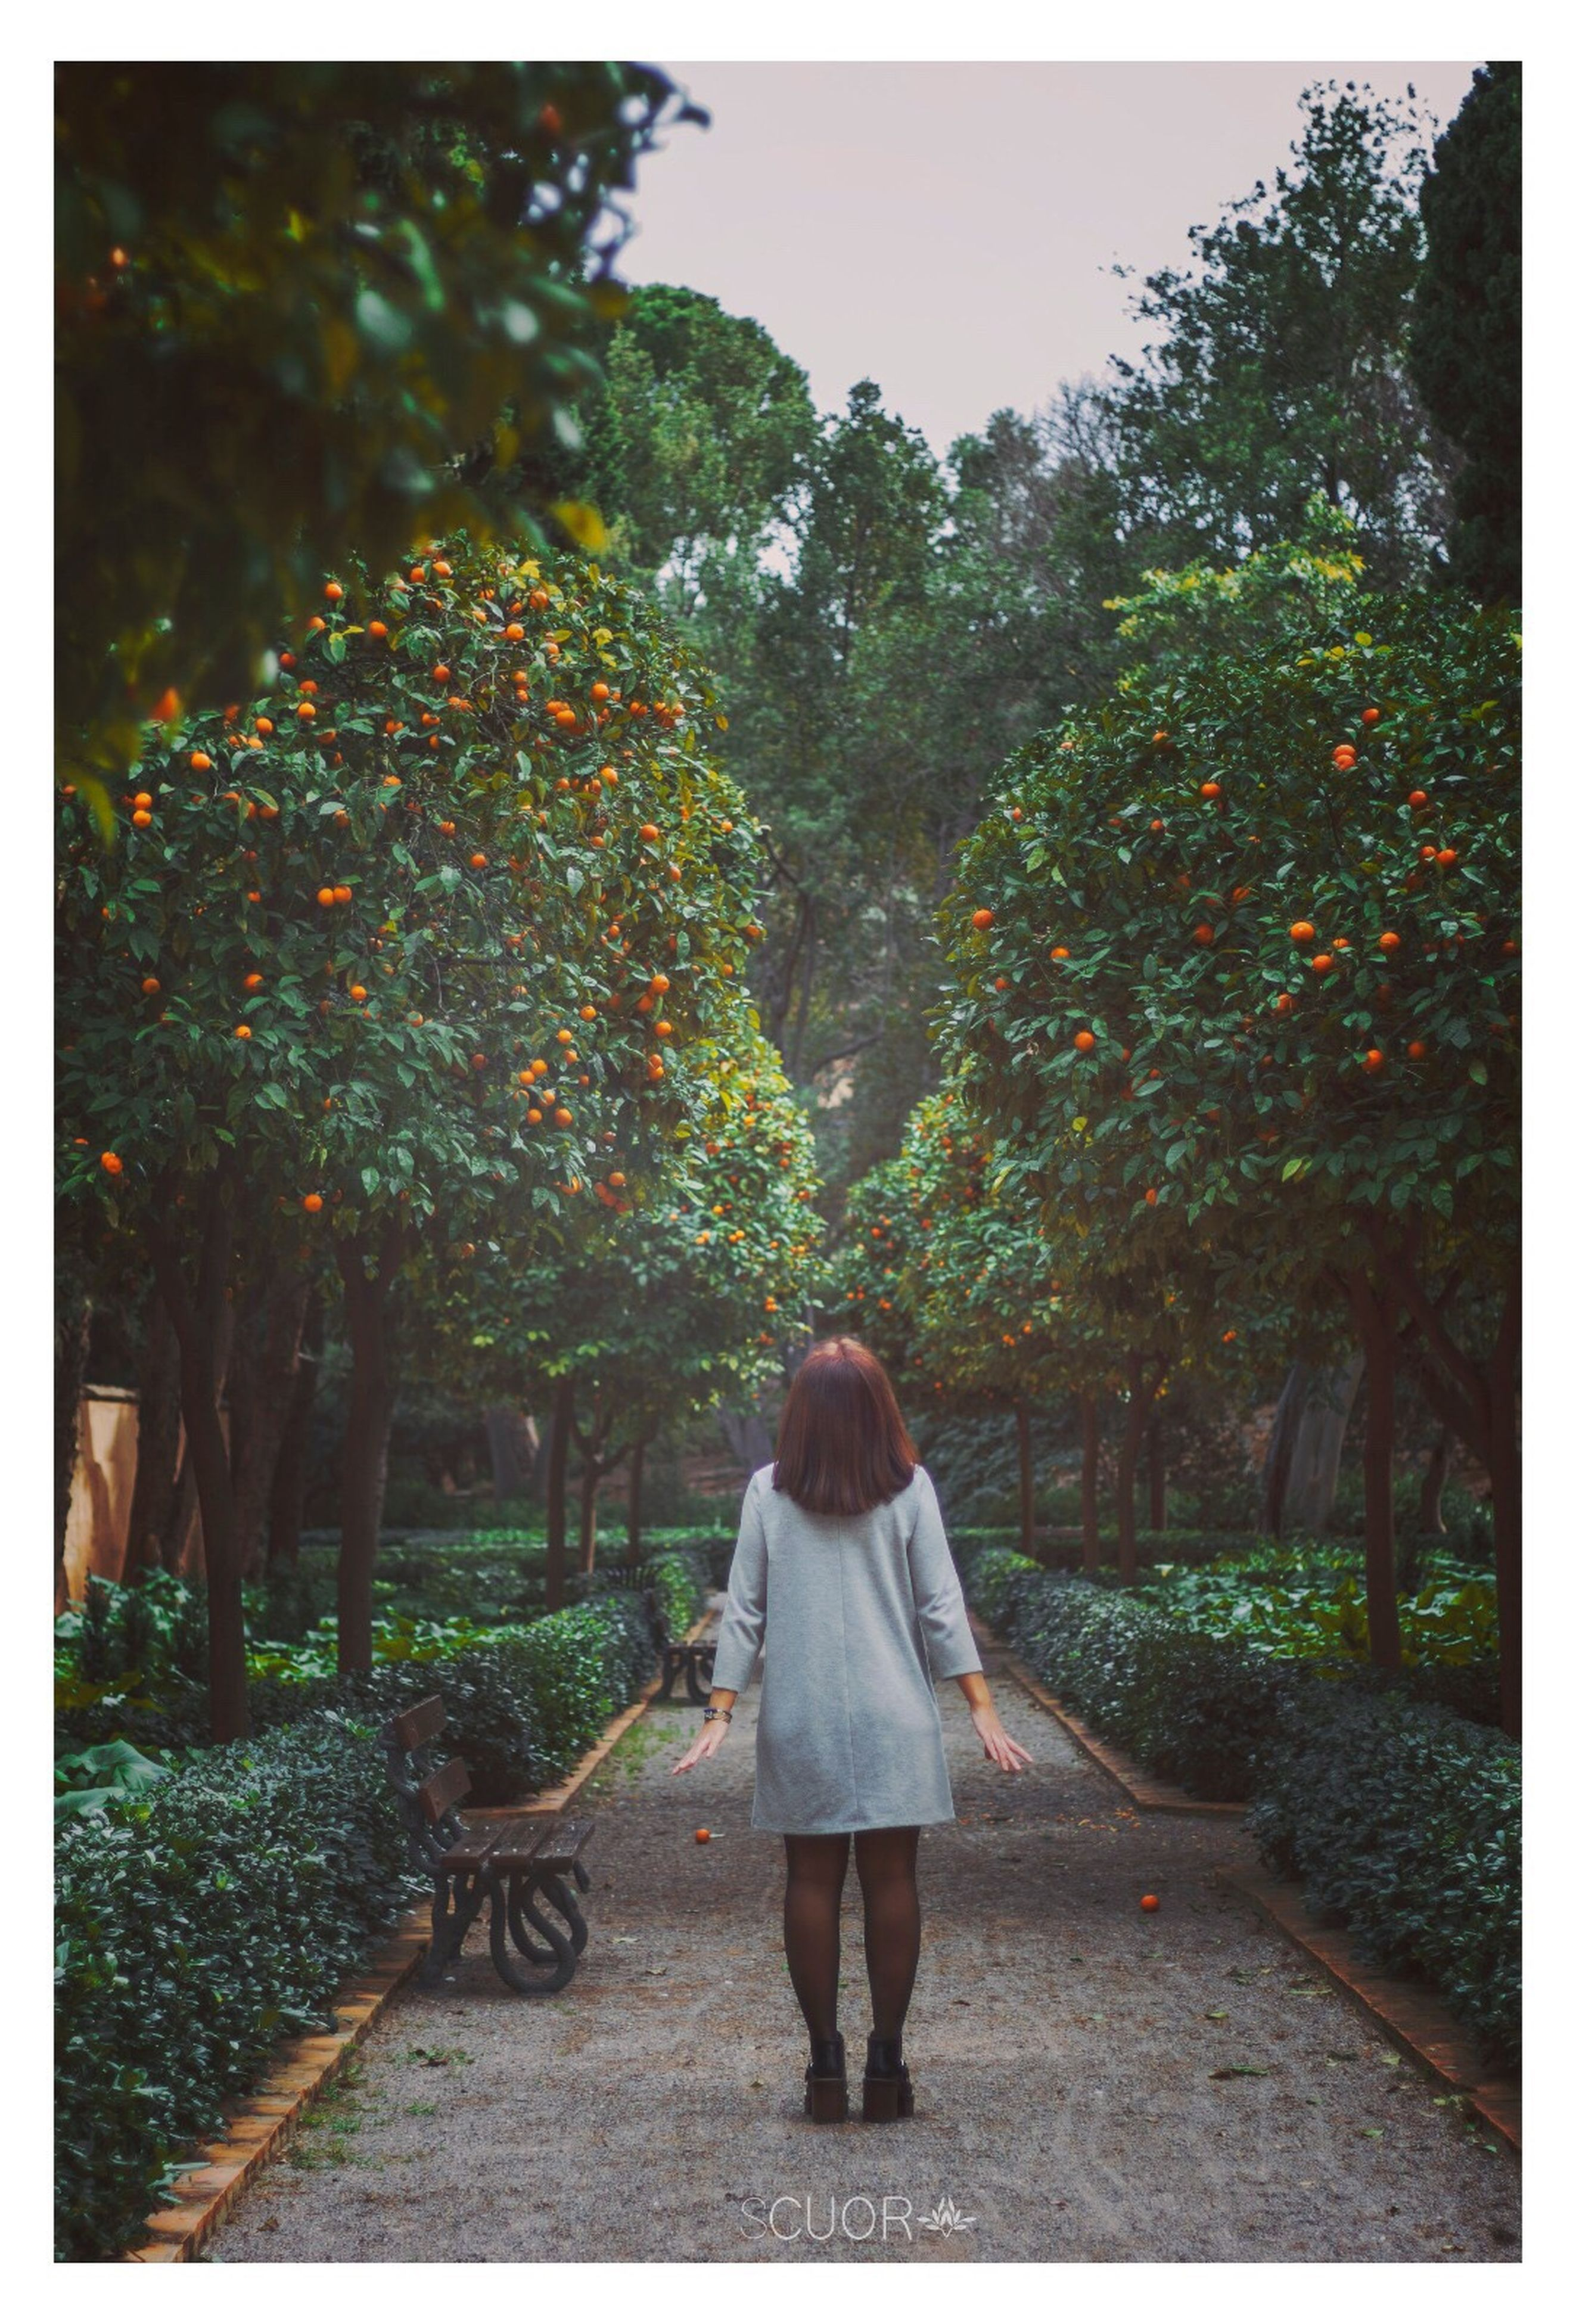 rear view, tree, full length, nature, women, one person, leisure activity, green color, outdoors, plant, only women, day, real people, people, adults only, adult